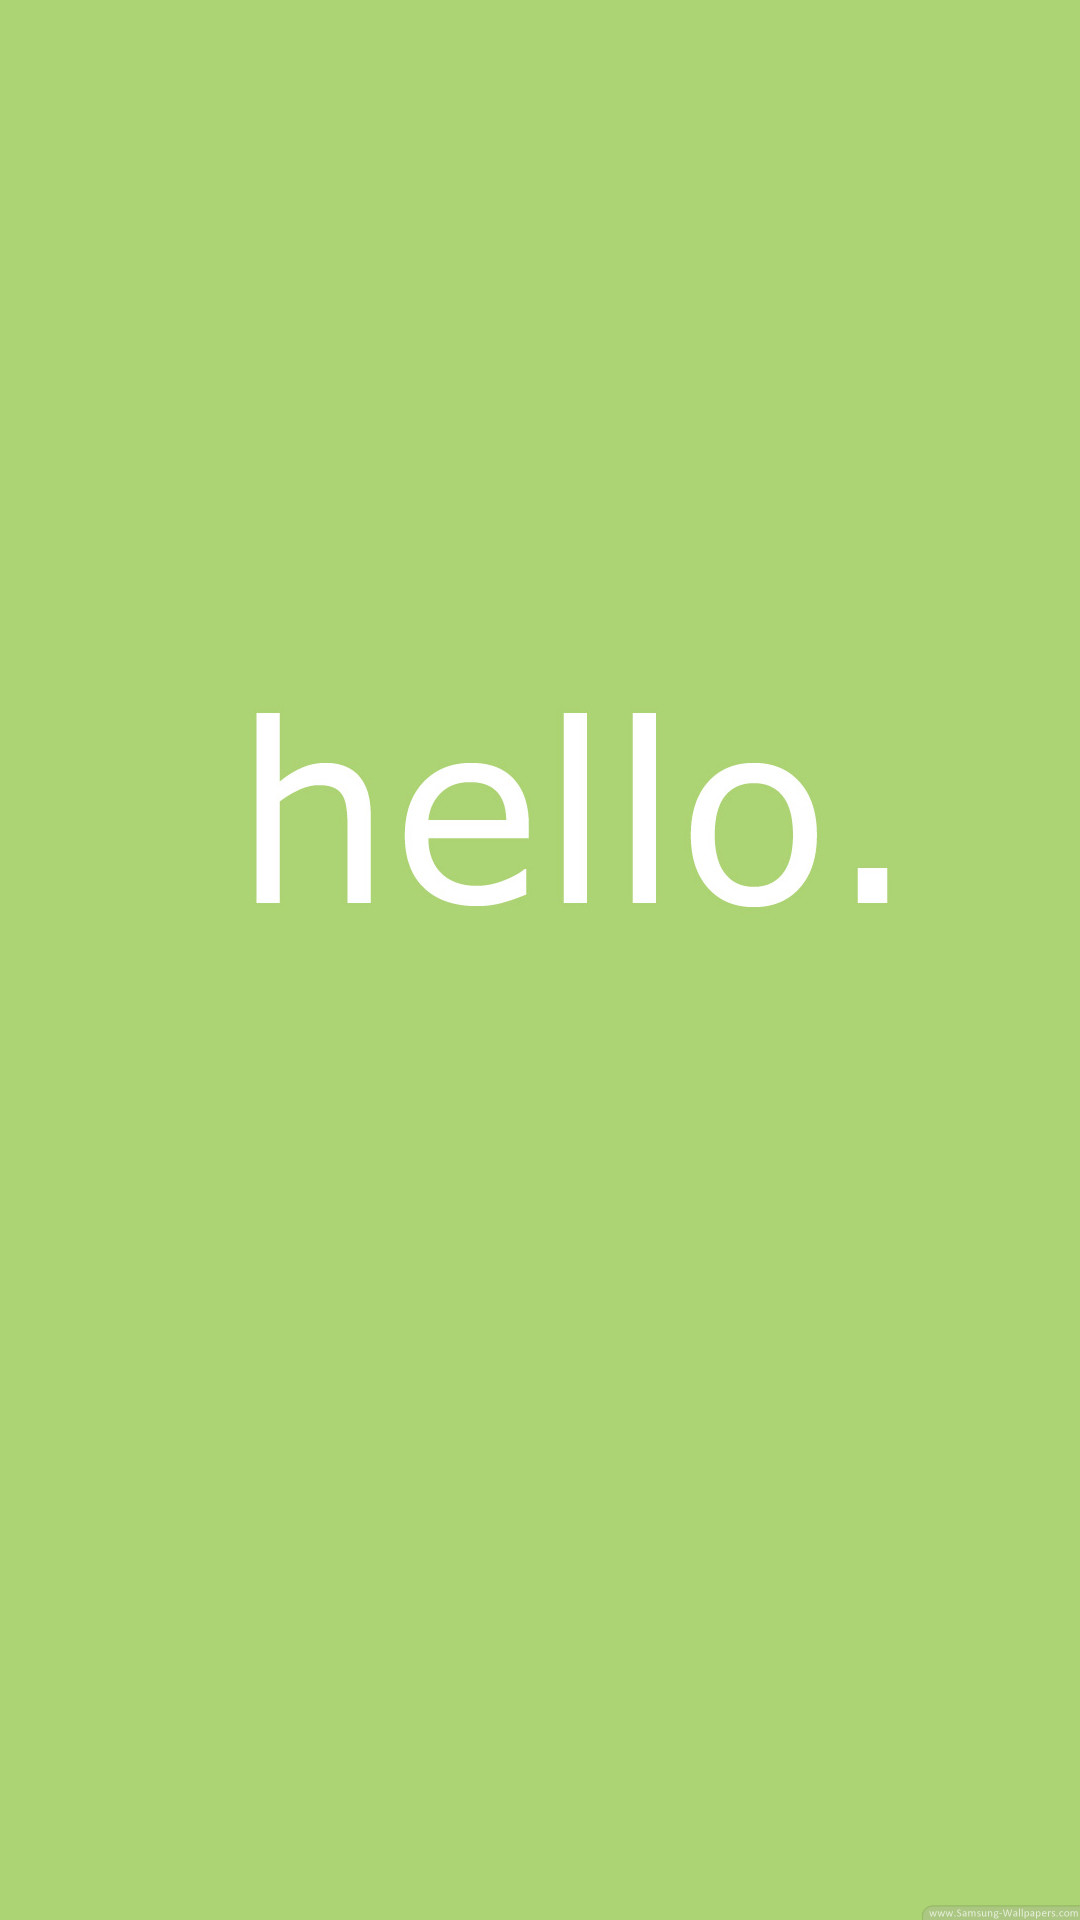 1080x1920 Tap image for more iPhone quotes wallpaper! Simple Hello - @mobile9 |  Wallpapers for